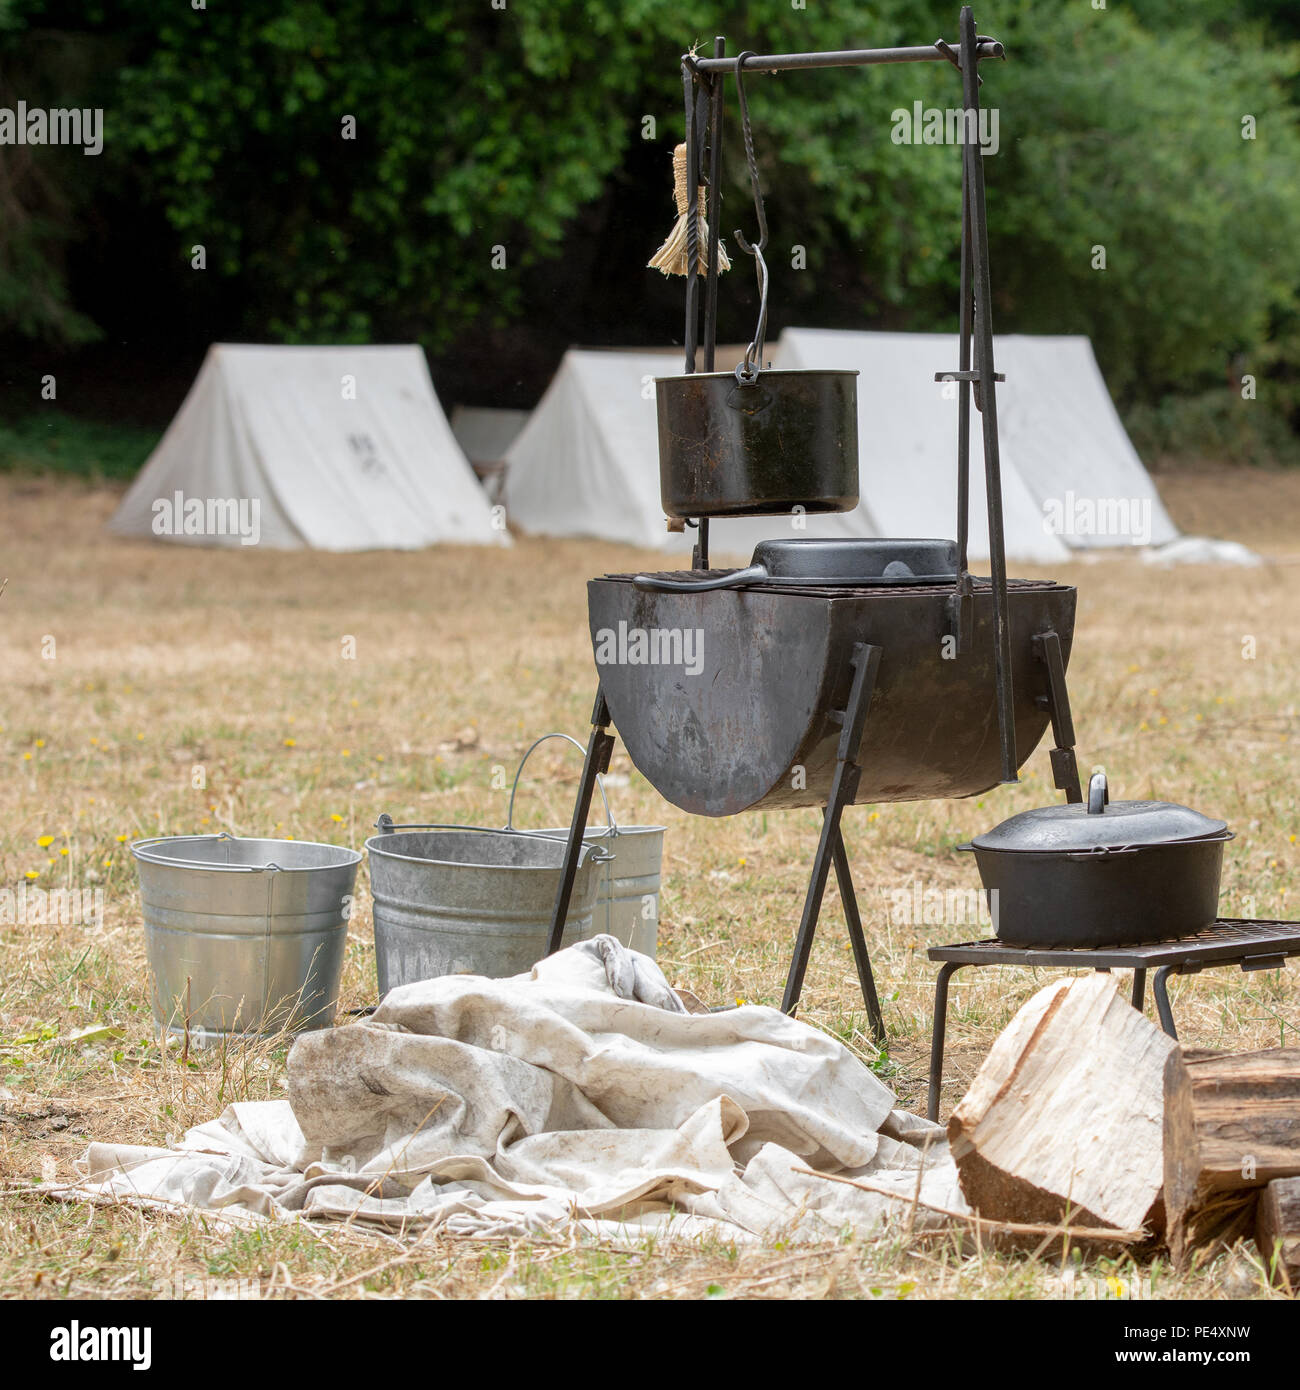 Buckets iron skillets and pans and a wood stove on dry grass and vintage kitchen utensils suggesting a Civil War or gold rush c& with canvas tent & Buckets iron skillets and pans and a wood stove on dry grass and ...